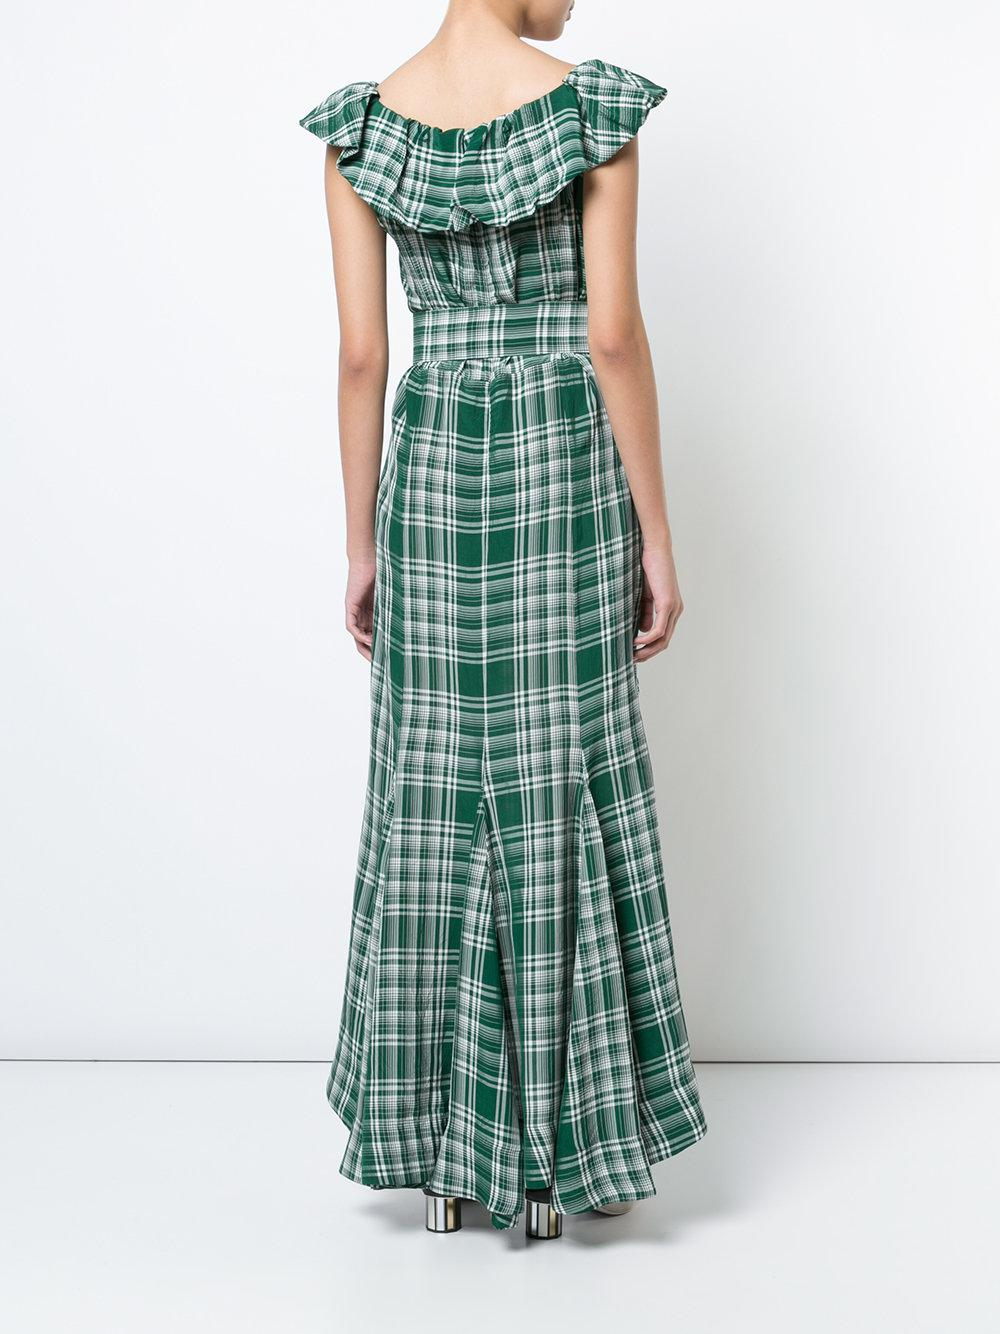 Lyst - Rosie Assoulin Crinkle Plaid Dress in Green - Save ...